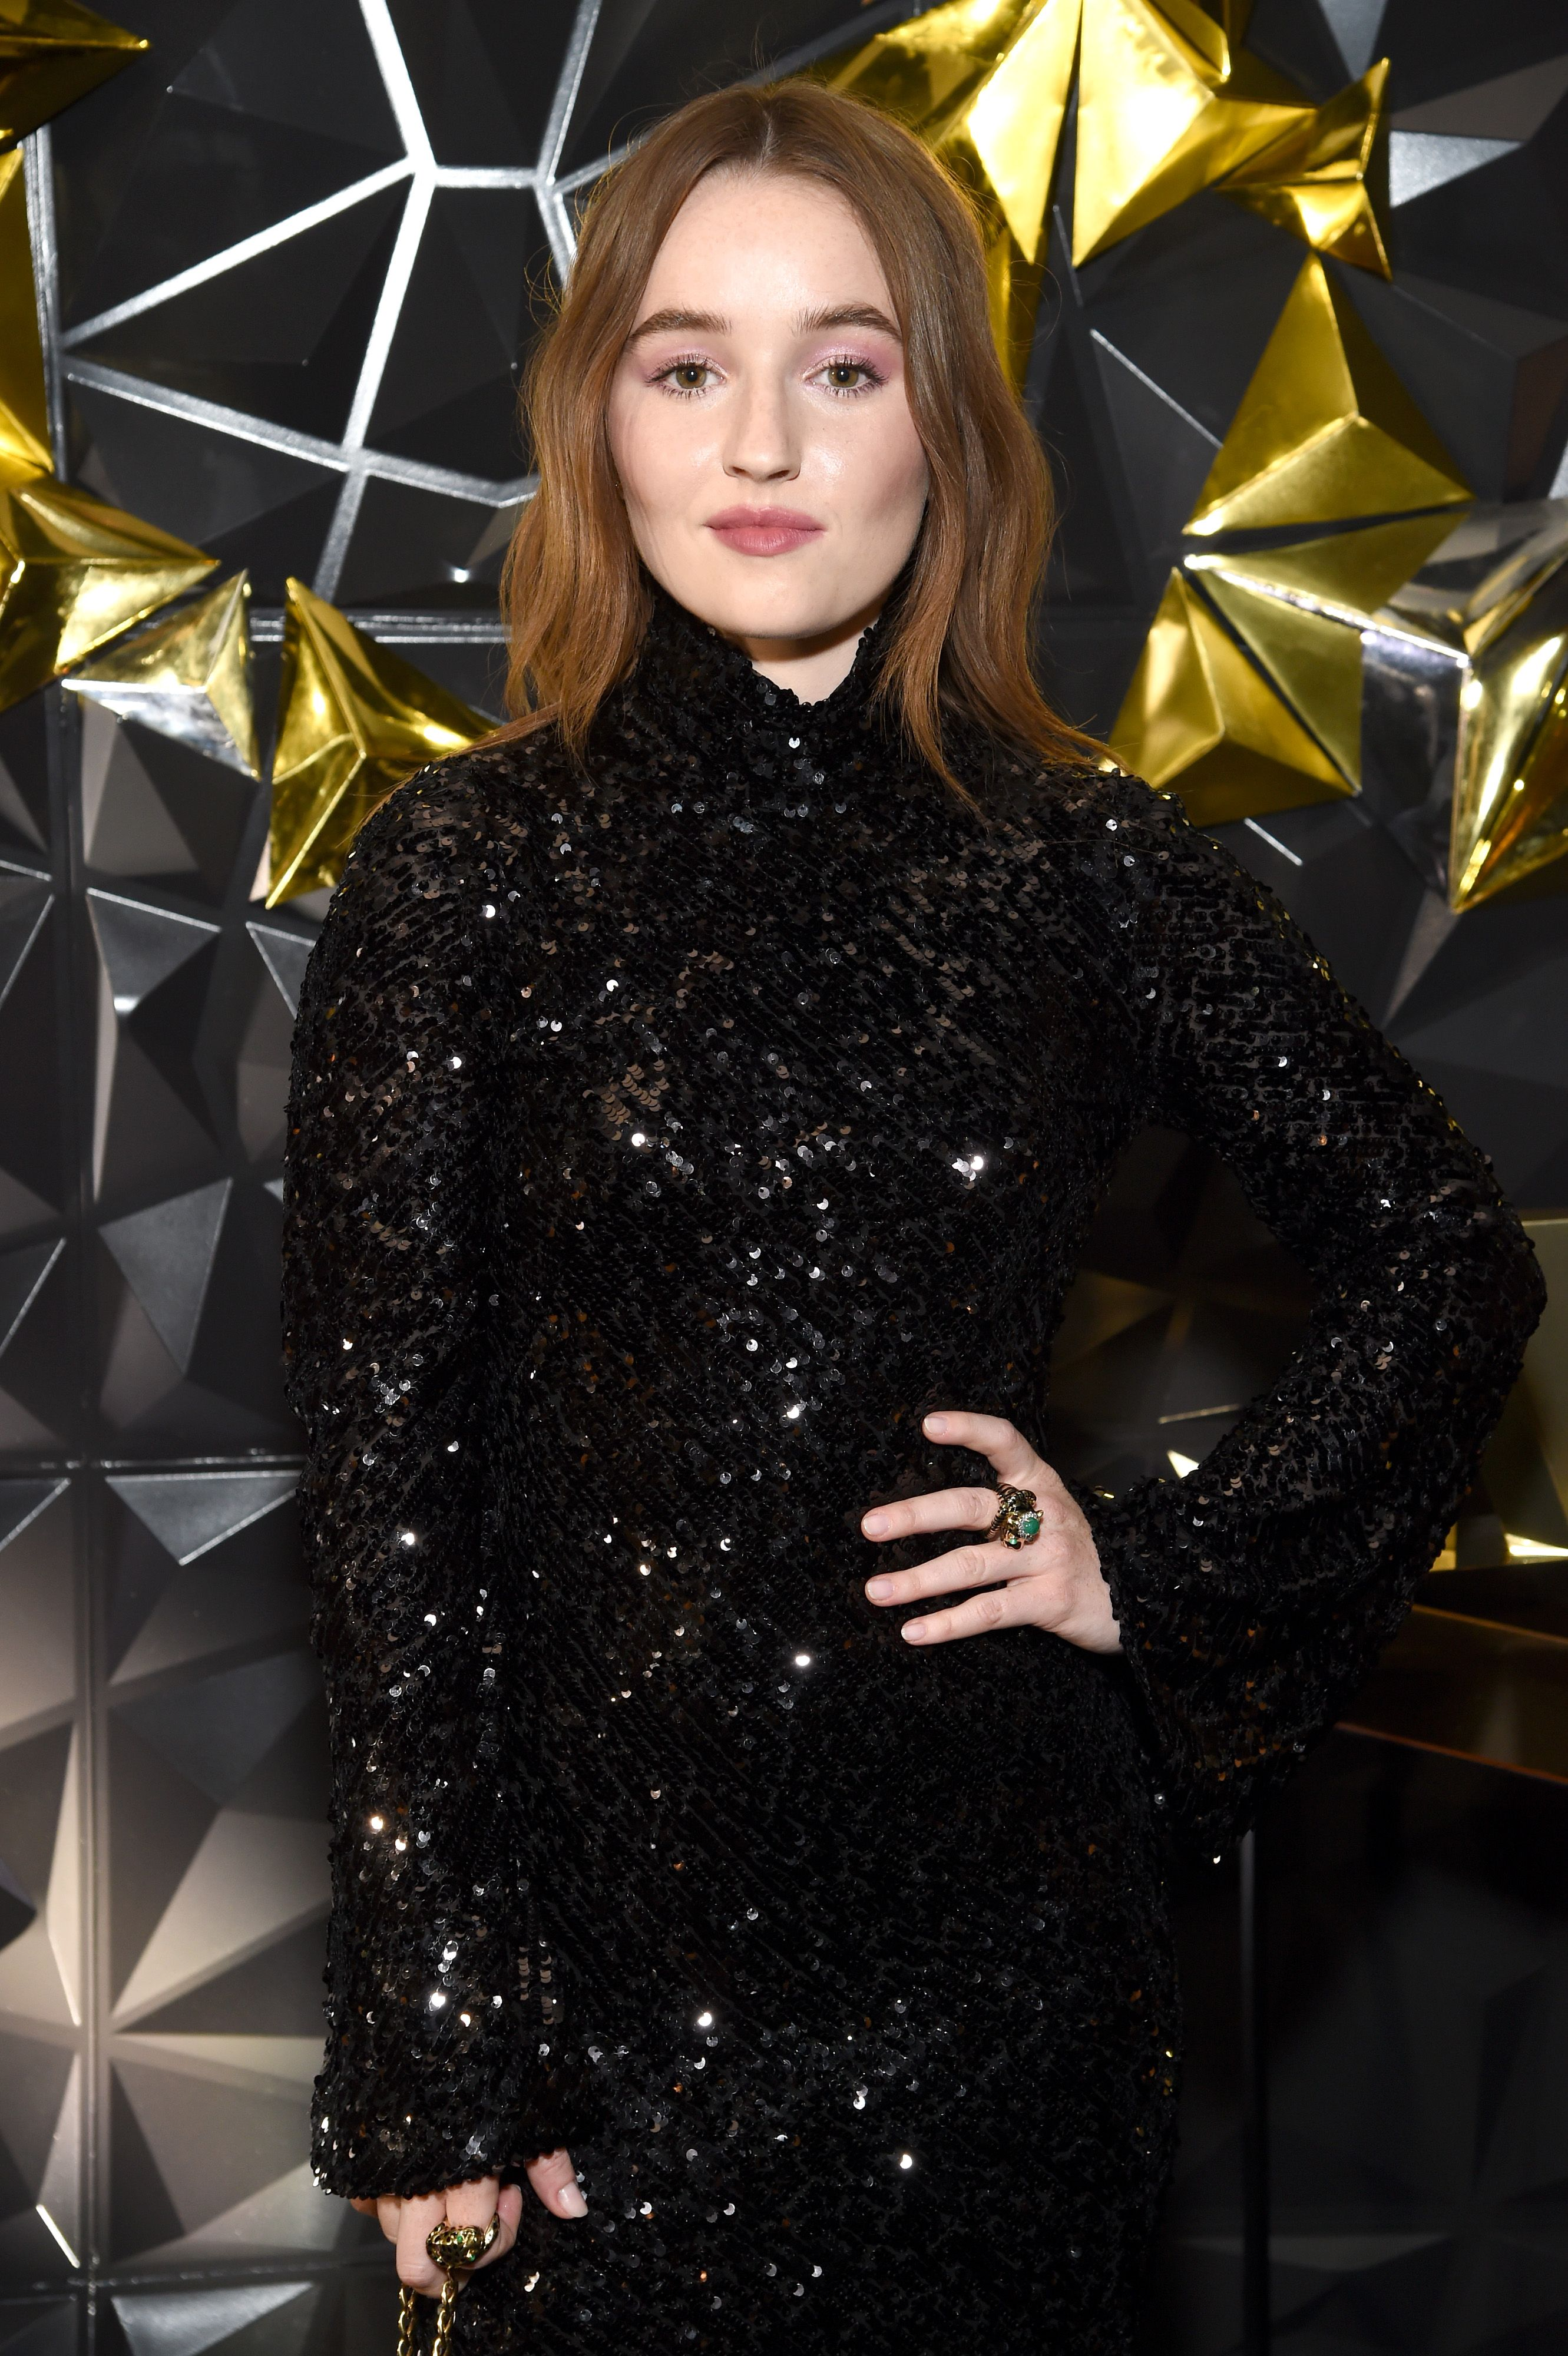 'Unbelievable' Star Kaitlyn Dever Just Urged Congress To Pass The Debbie Smith Act